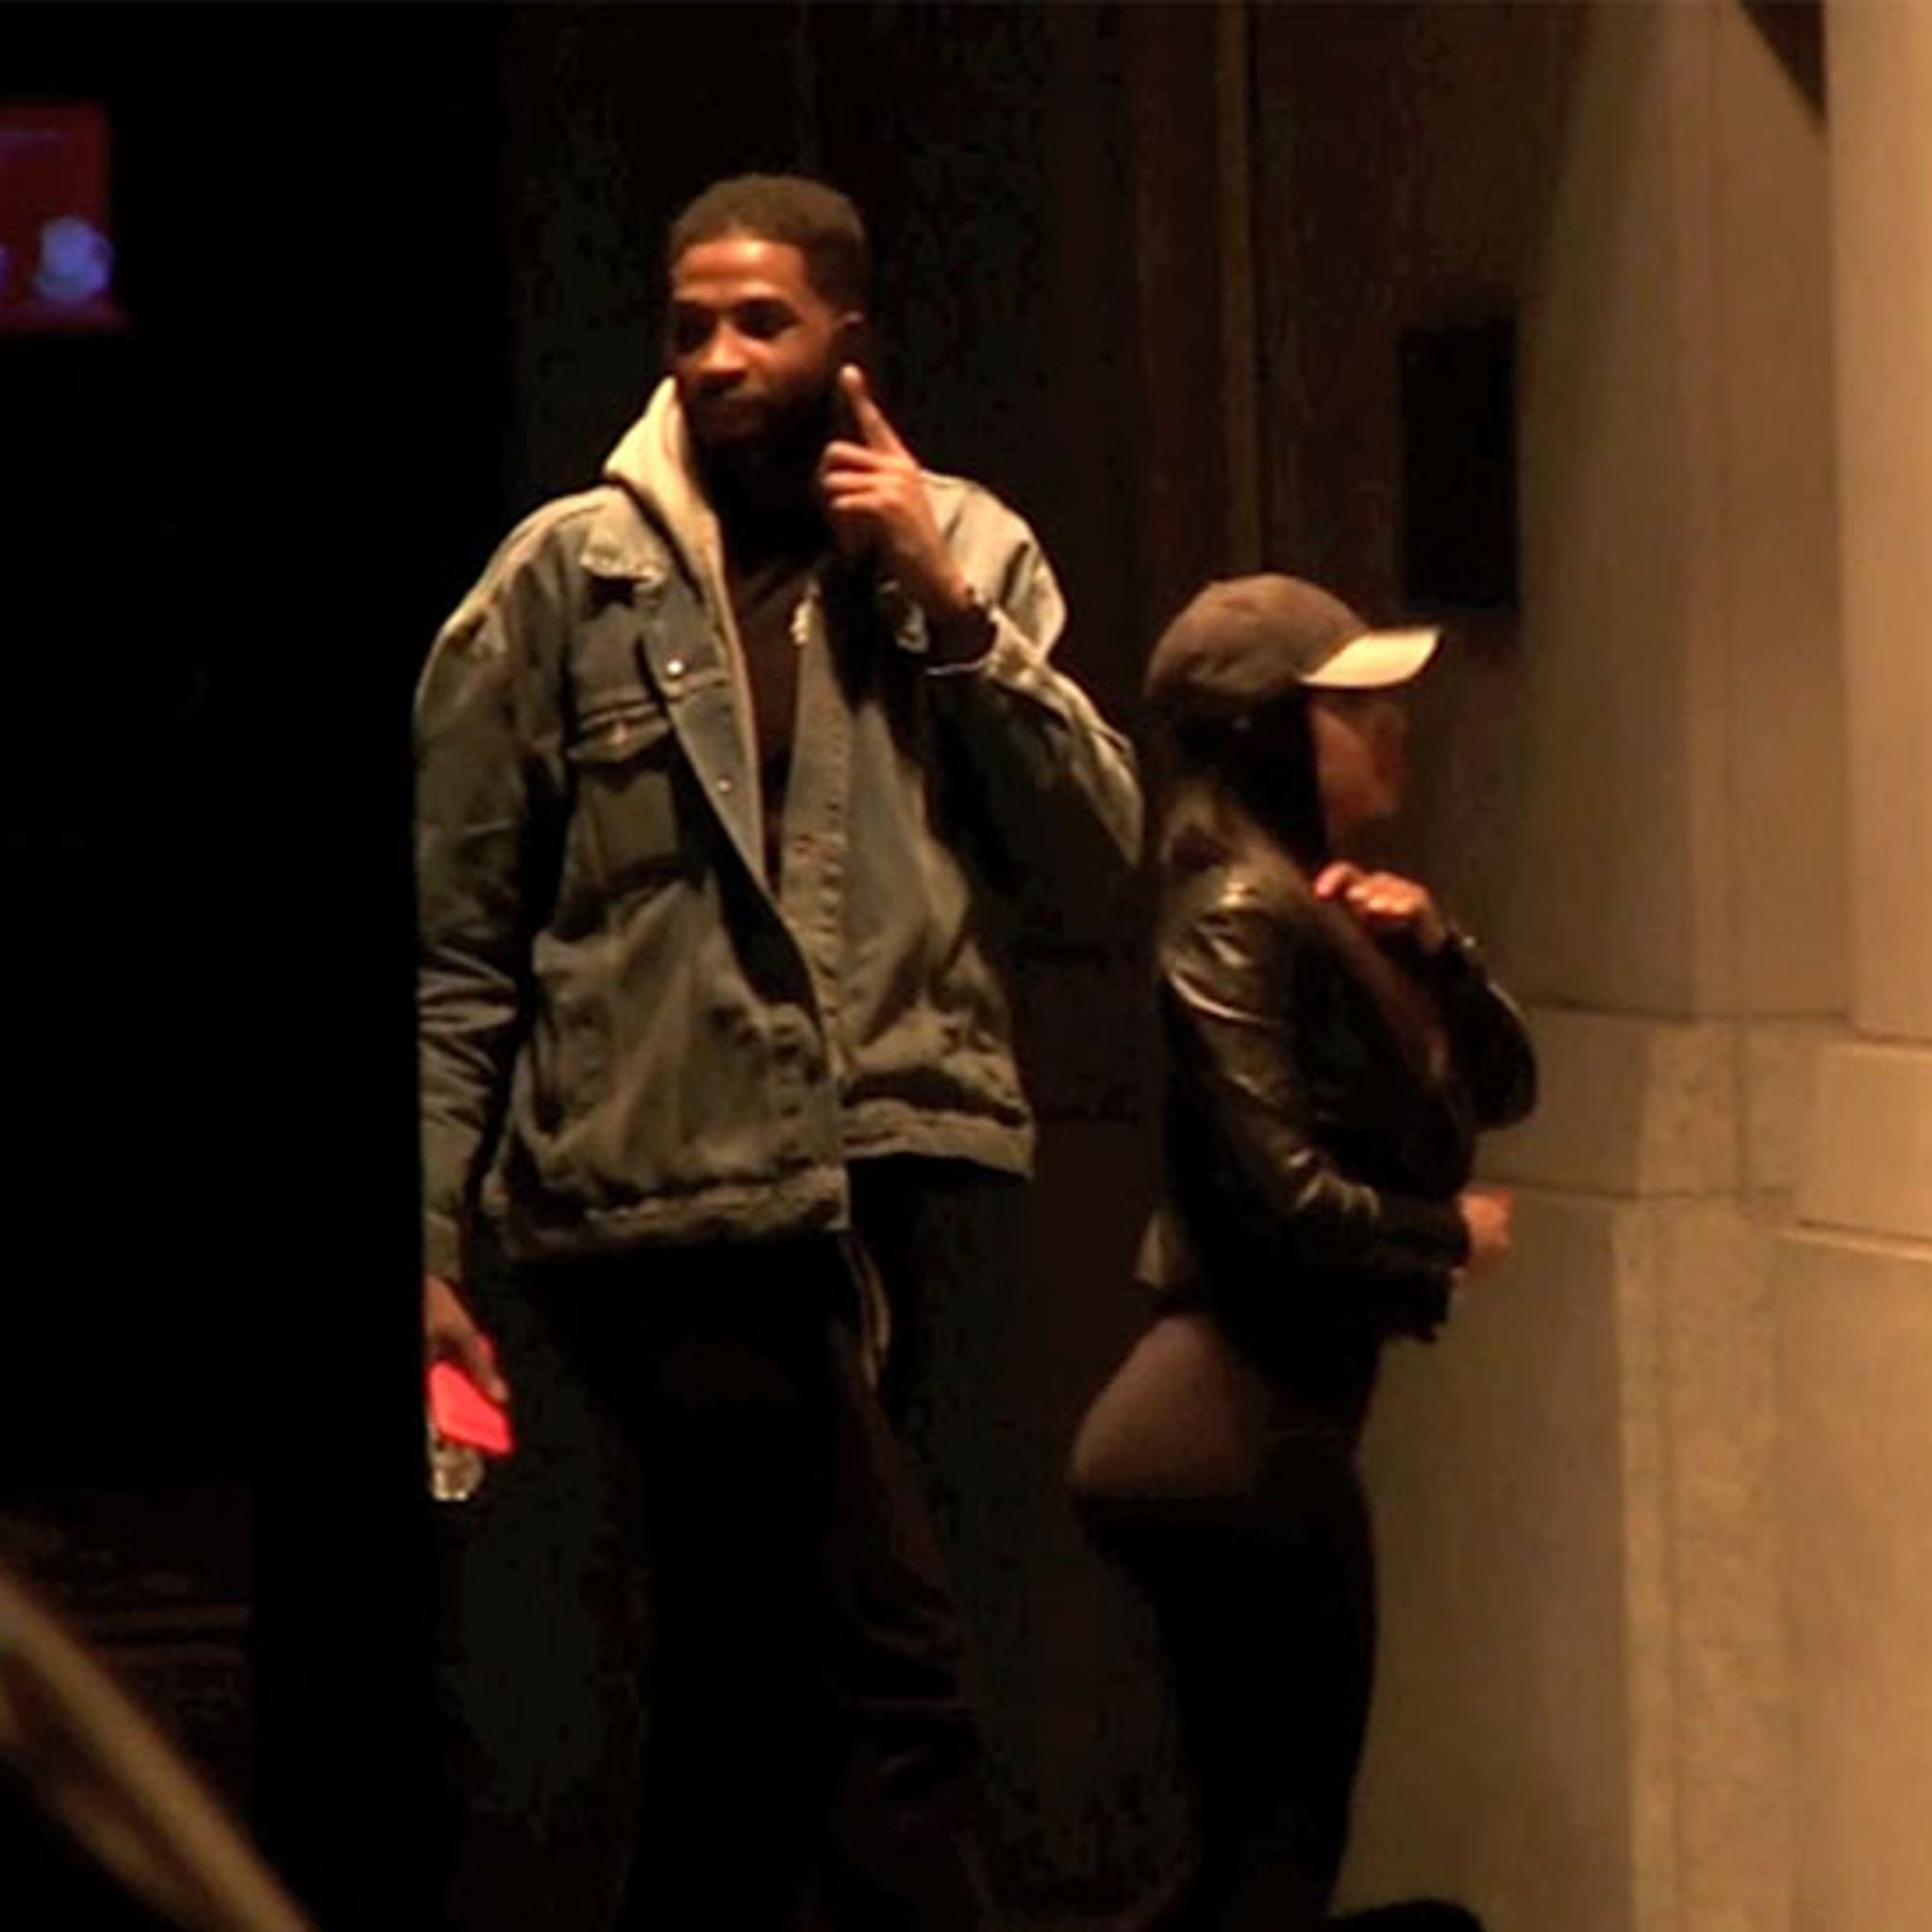 b26ebd11bfd Tristan Thompson Went Back to NYC Hotel with Woman from Nightclub